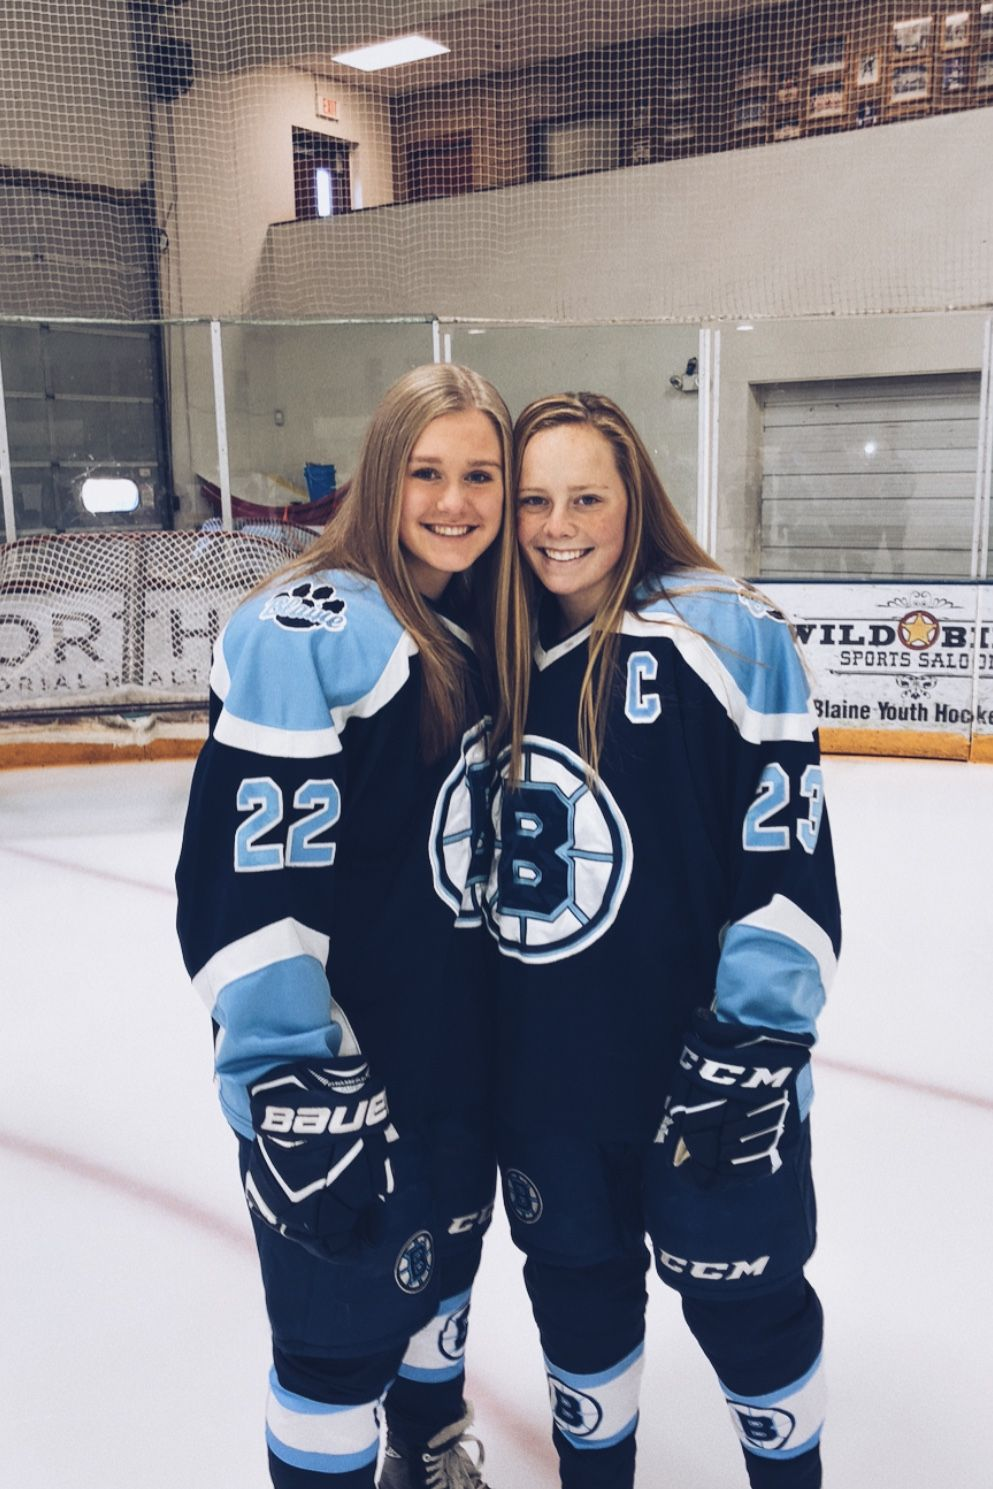 Pin By Mike Blake On Female Ice Hockey Players With Images Hockey Players Ice Hockey Players Hockey